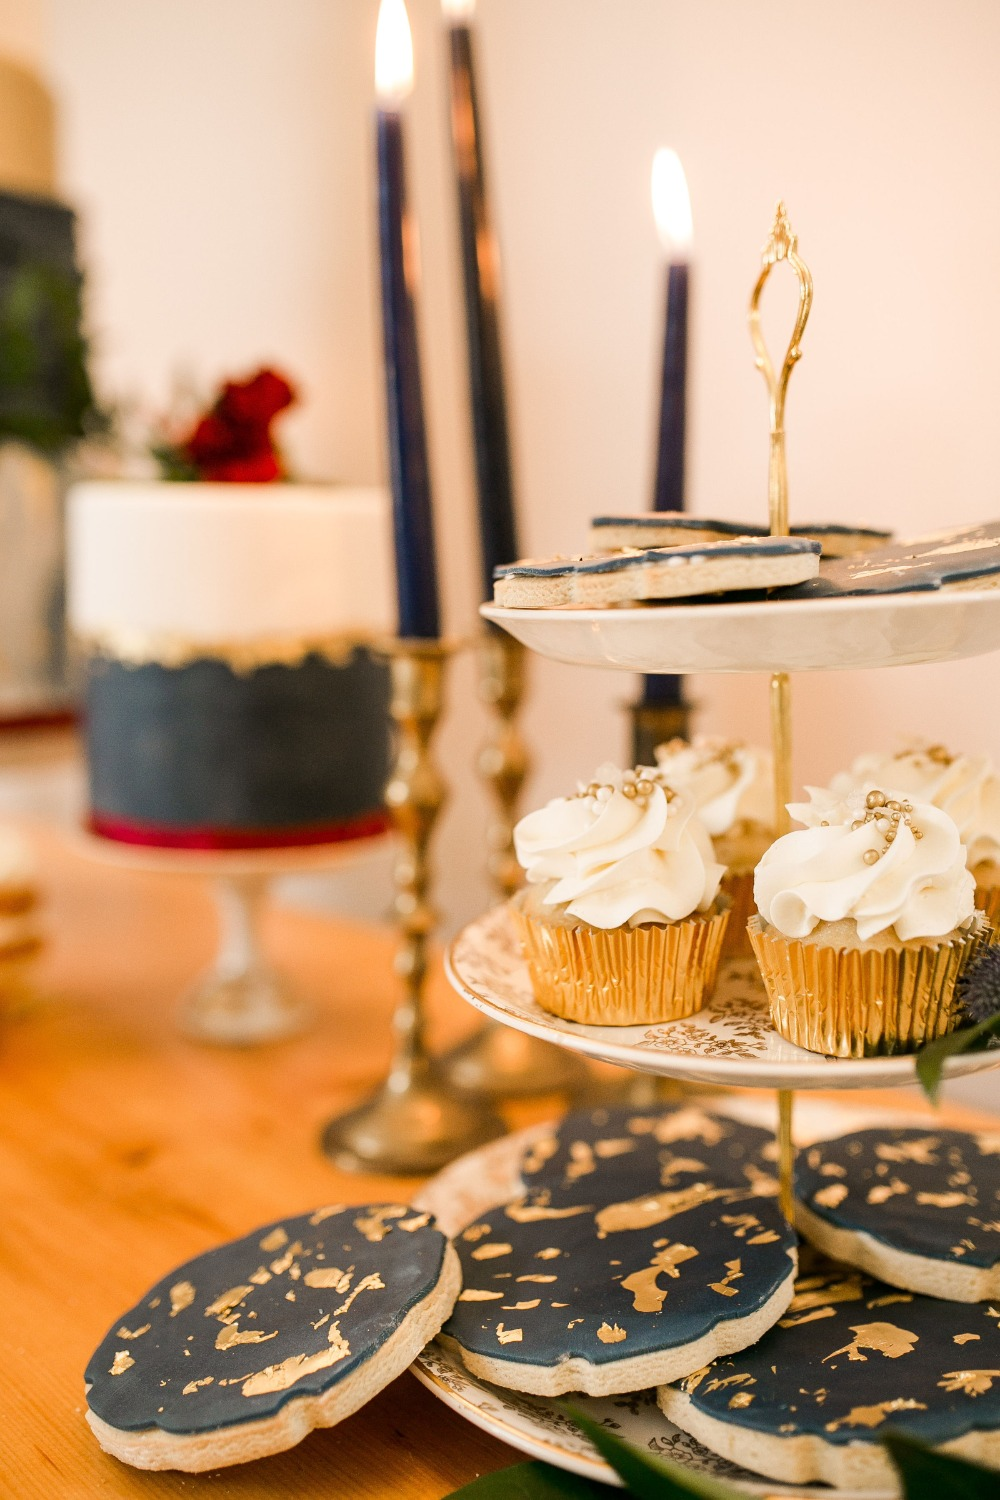 cupcakes and gold flake cookies